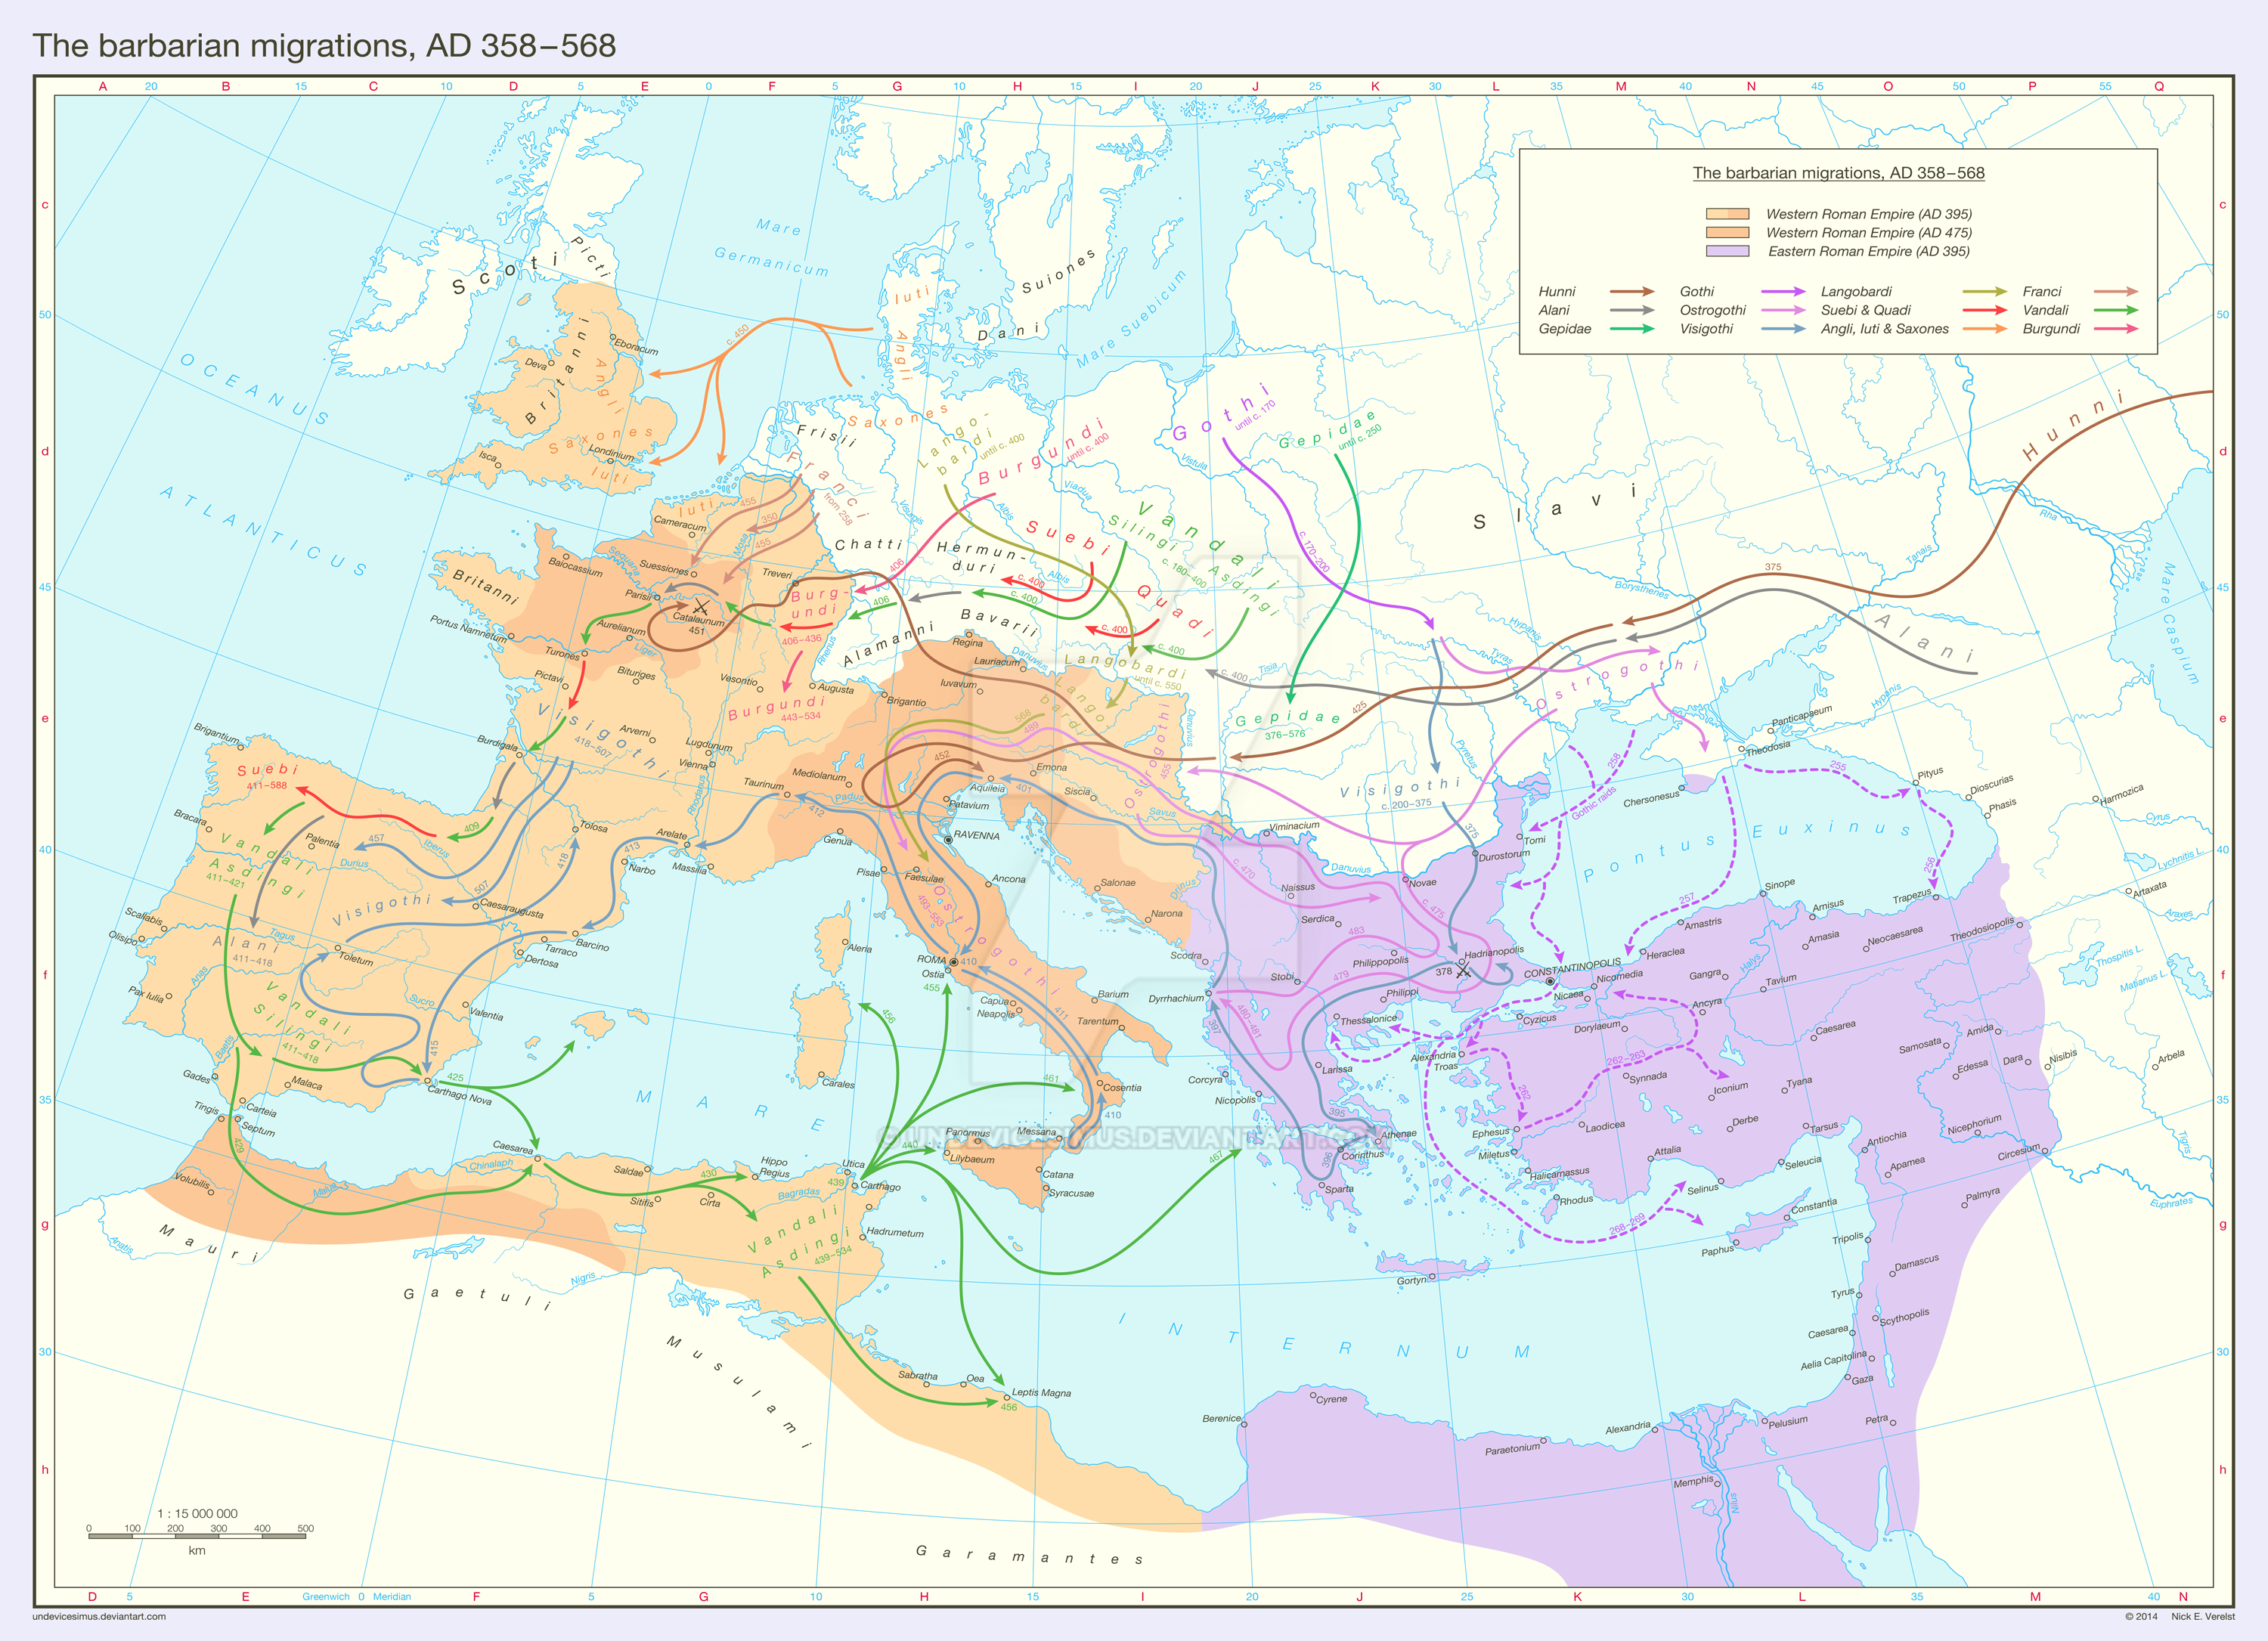 The barbarian migrations, AD 358 - 568 by Undevicesimus